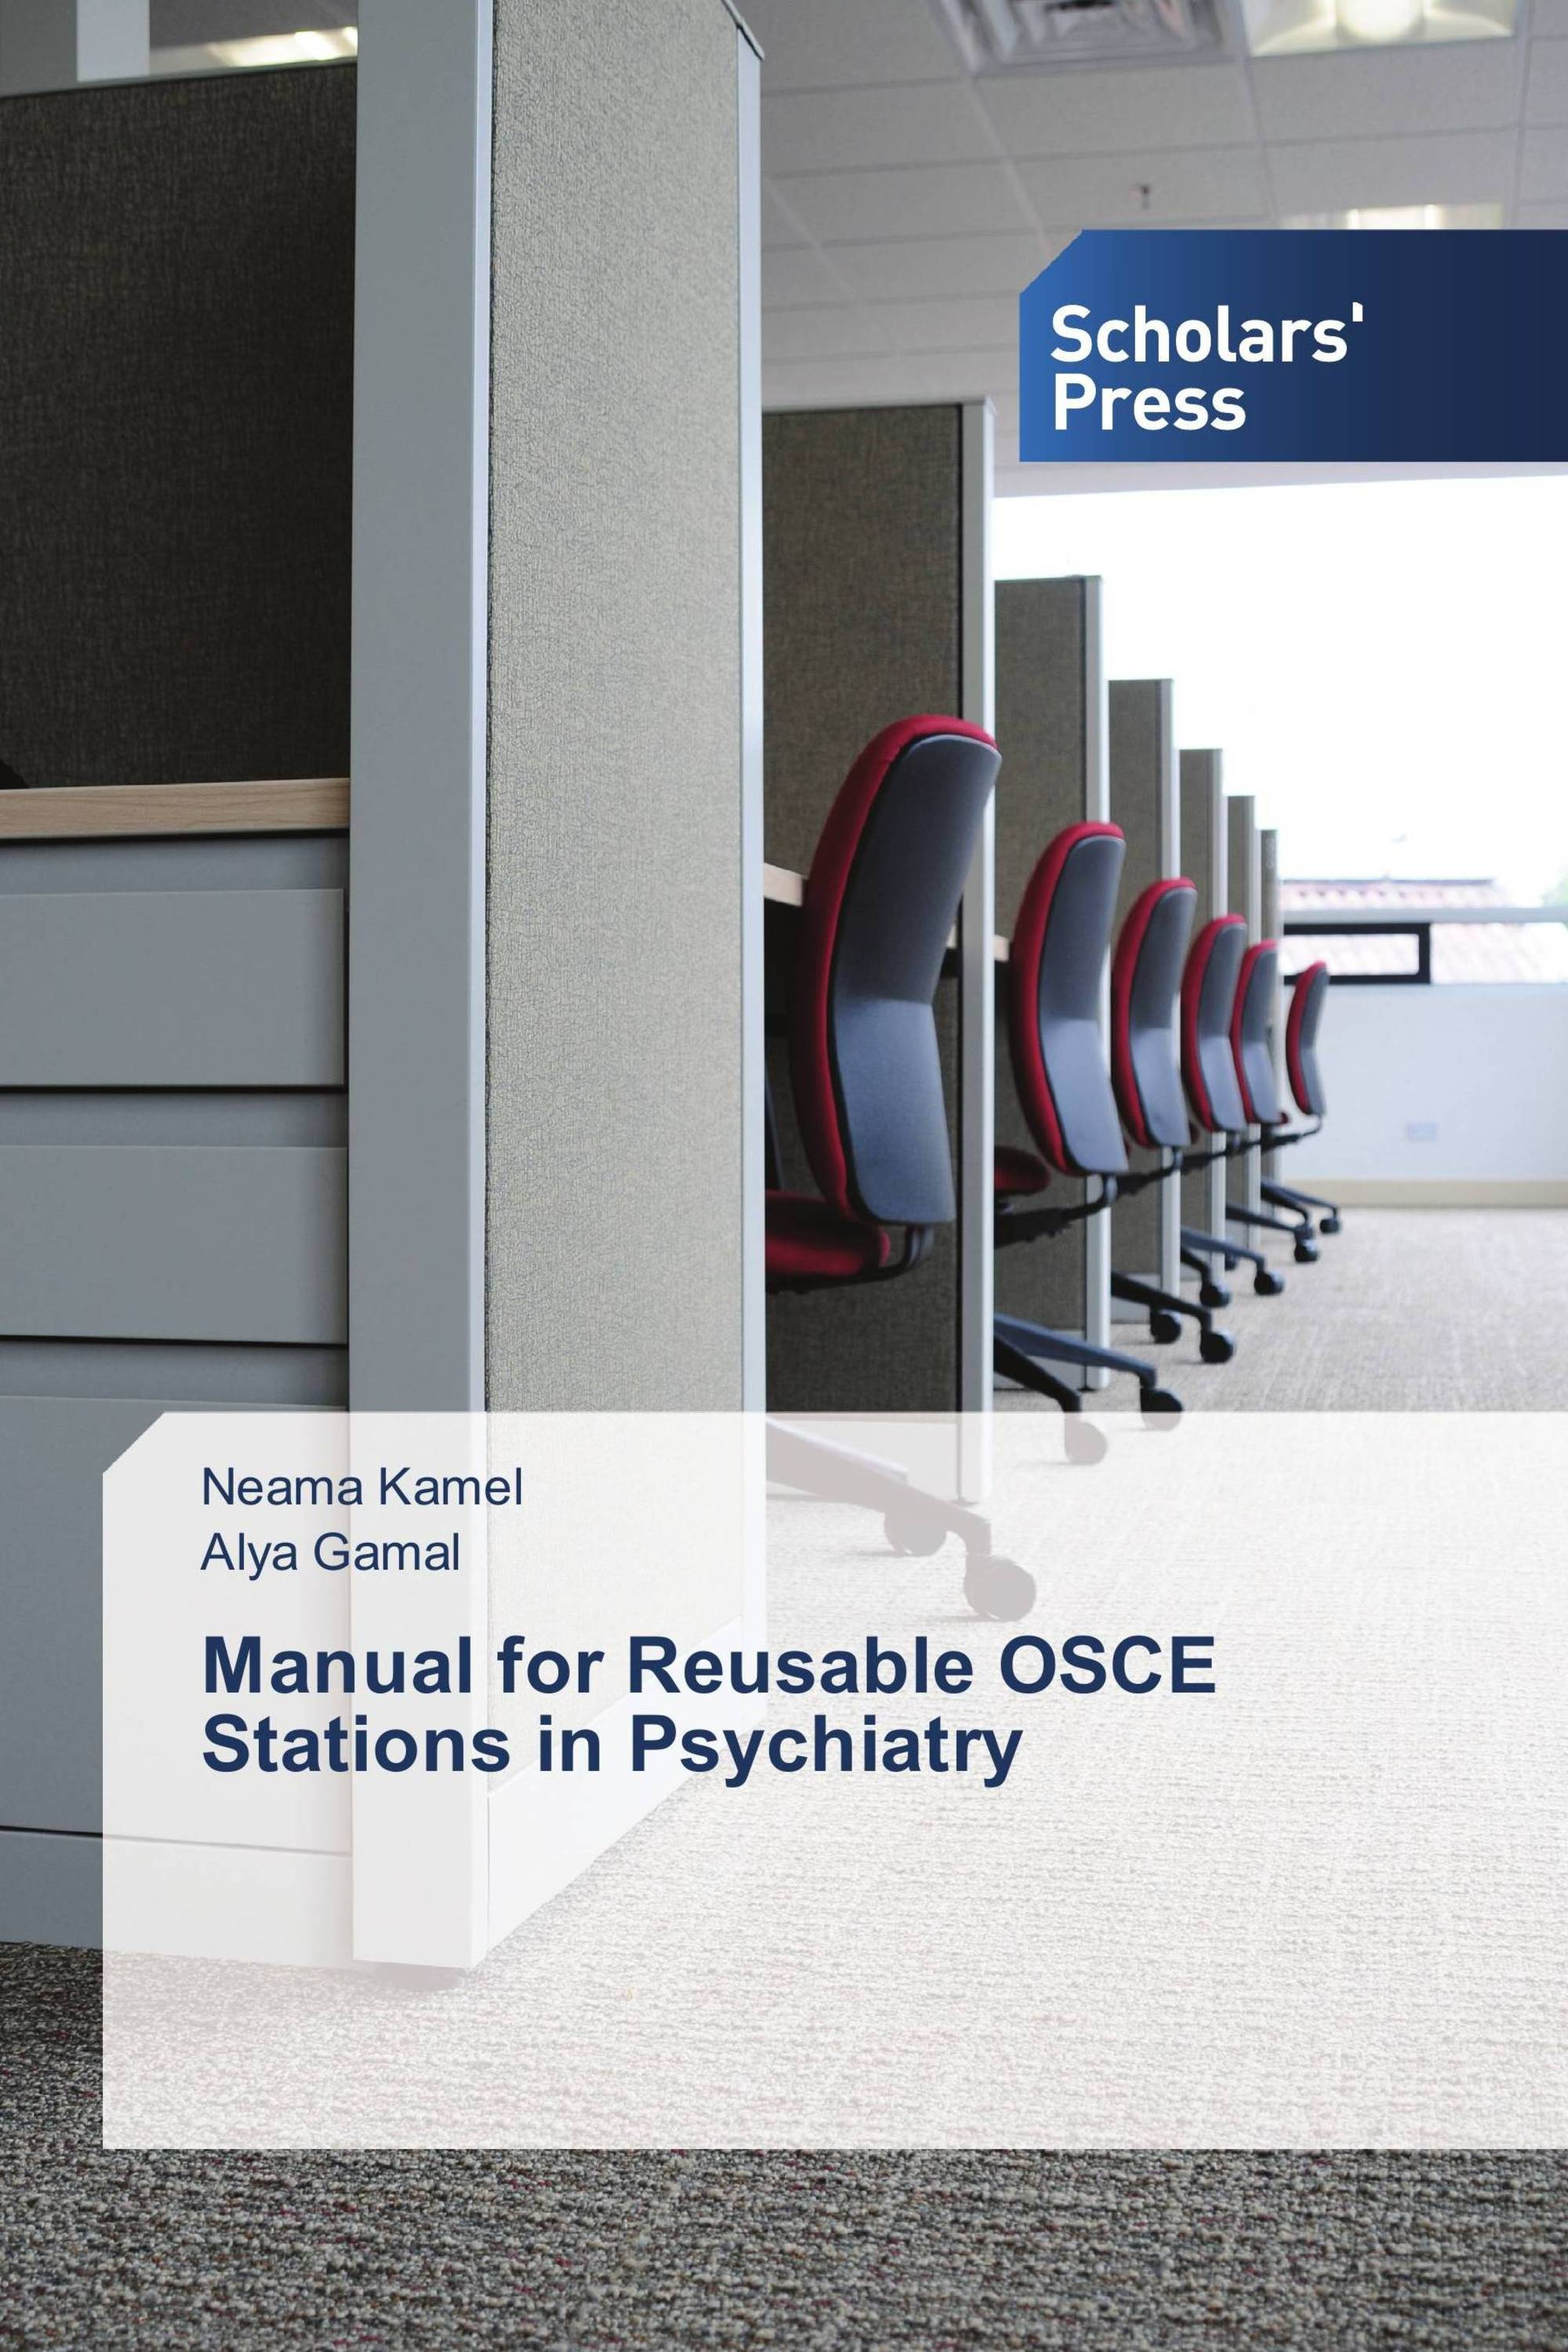 Manual for Reusable OSCE Stations in Psychiatry / 978-3-639-85987-4 /  9783639859874 / 3639859871